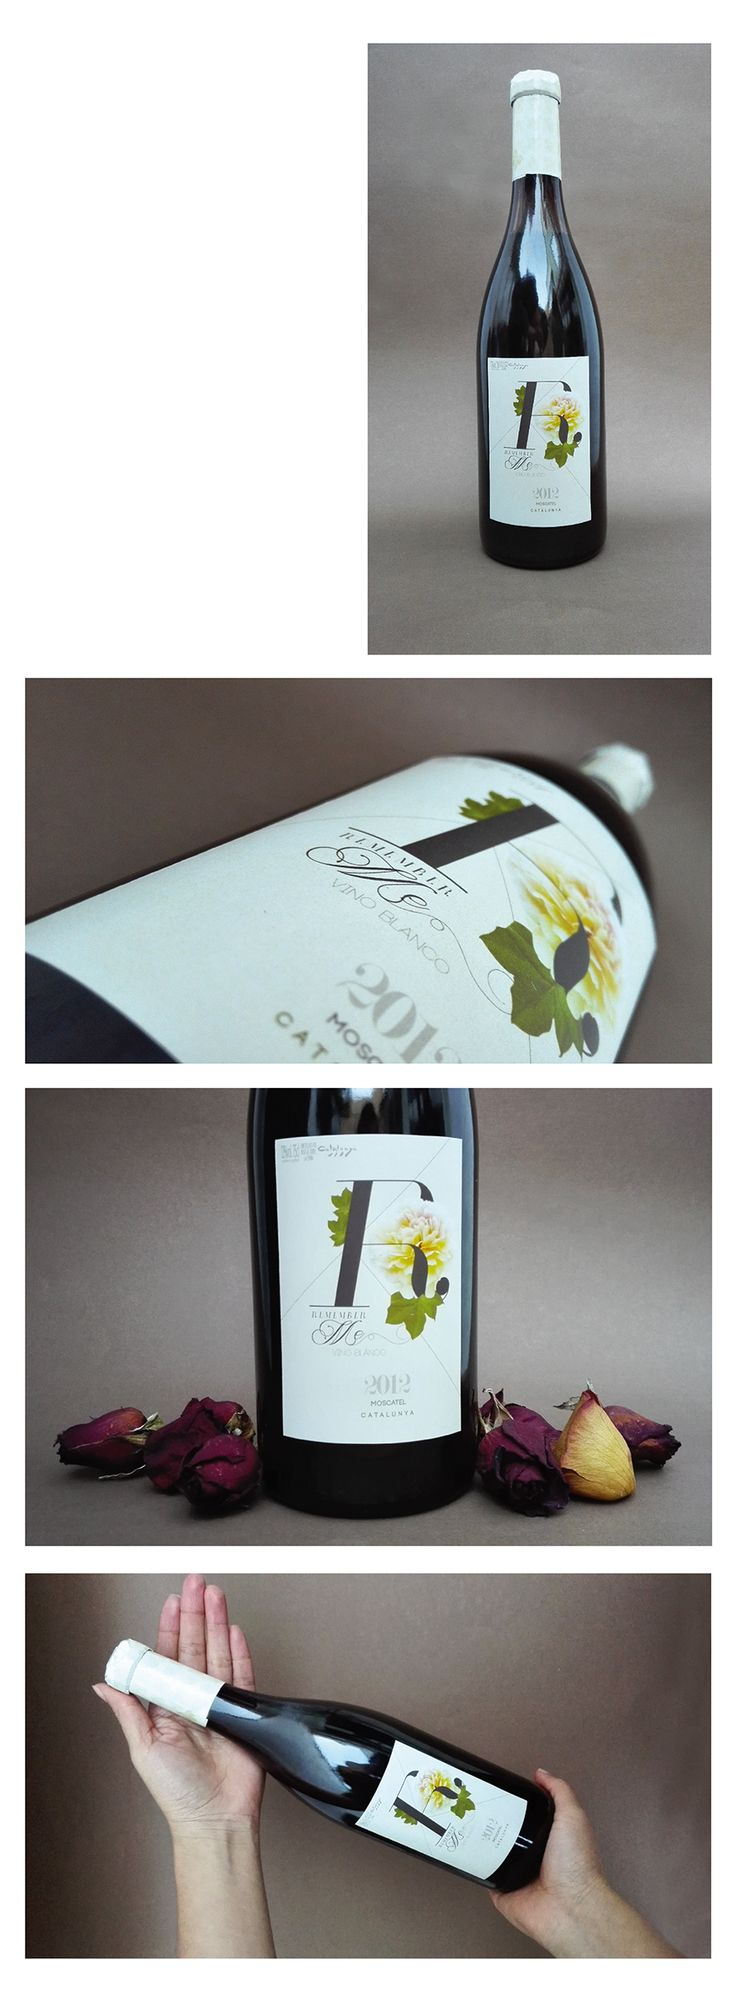 Diseño de etiqueta de vino Remember Me, Trabajo independiente.